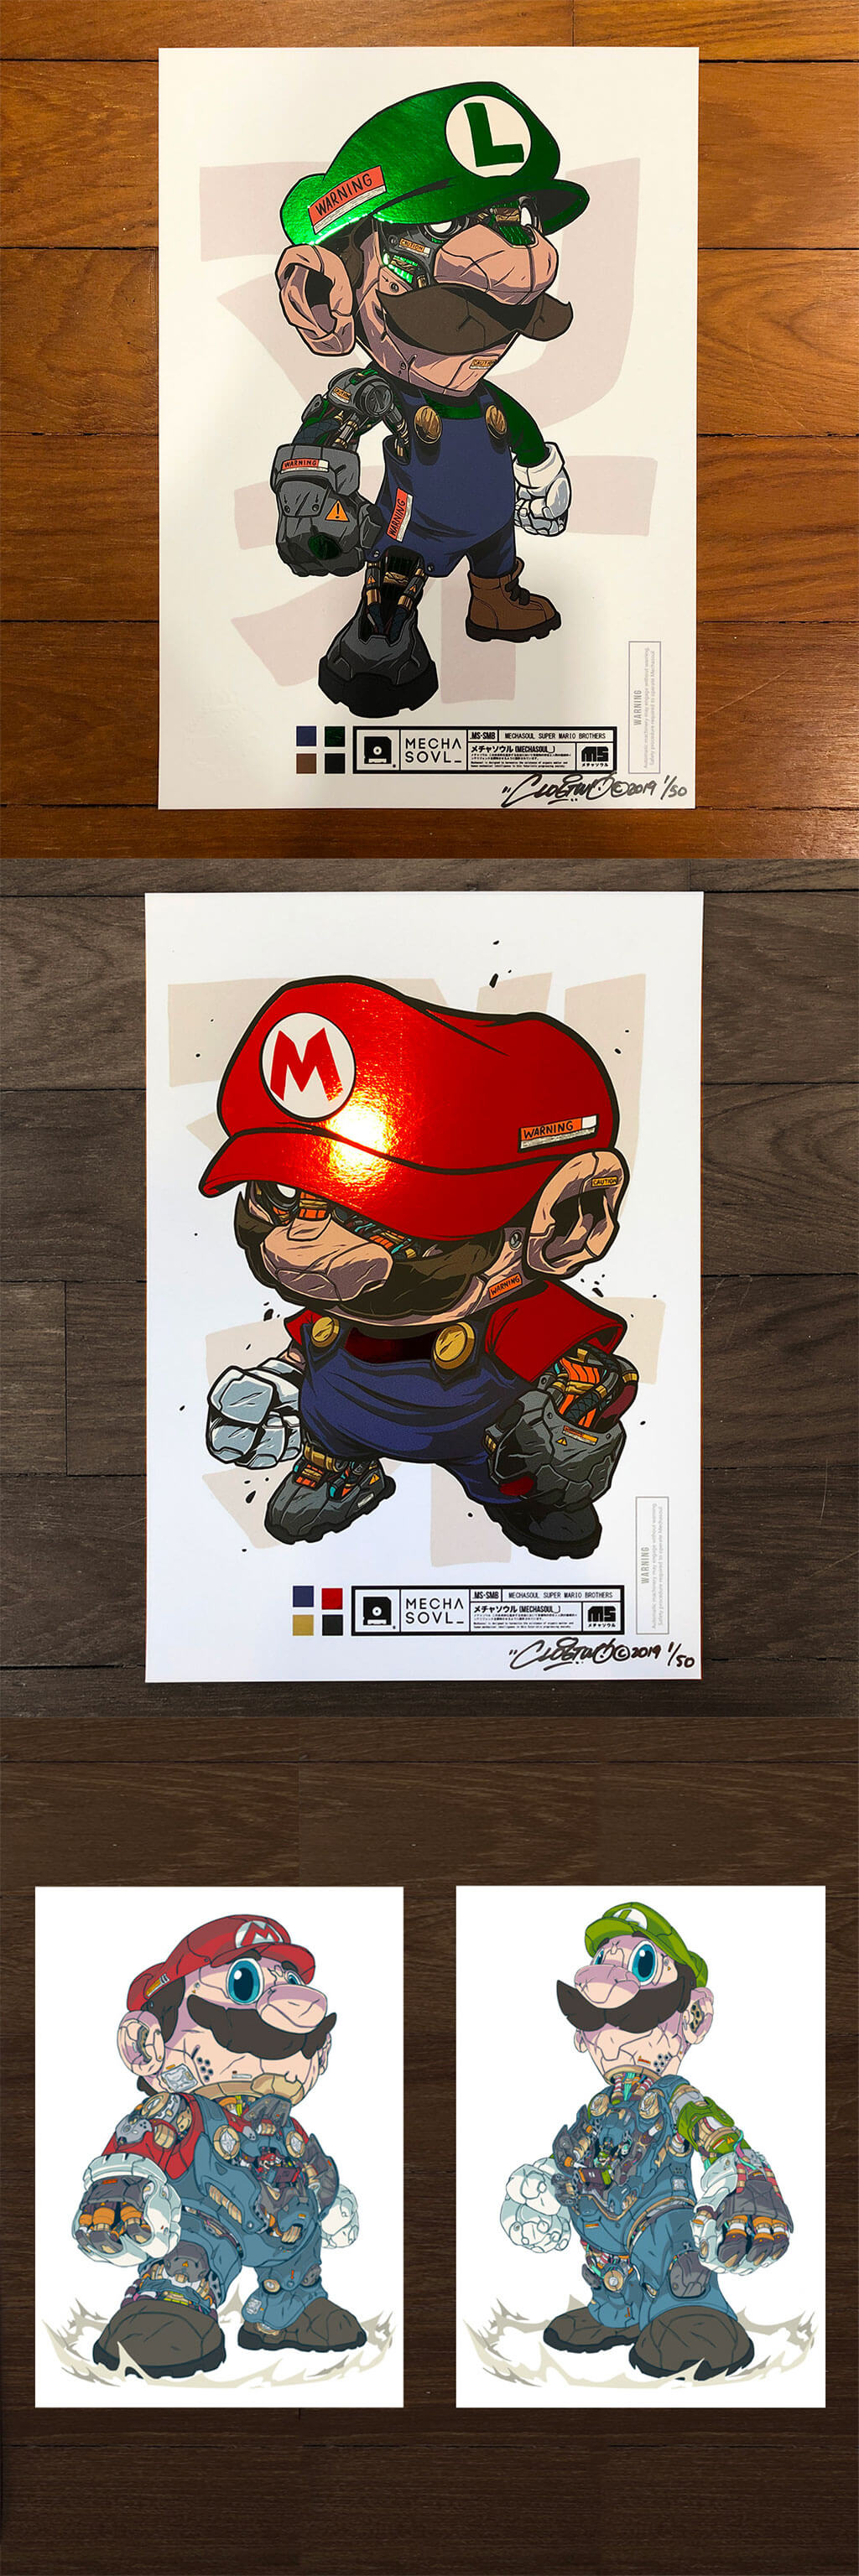 Mario Fan Art by CLOG TWO